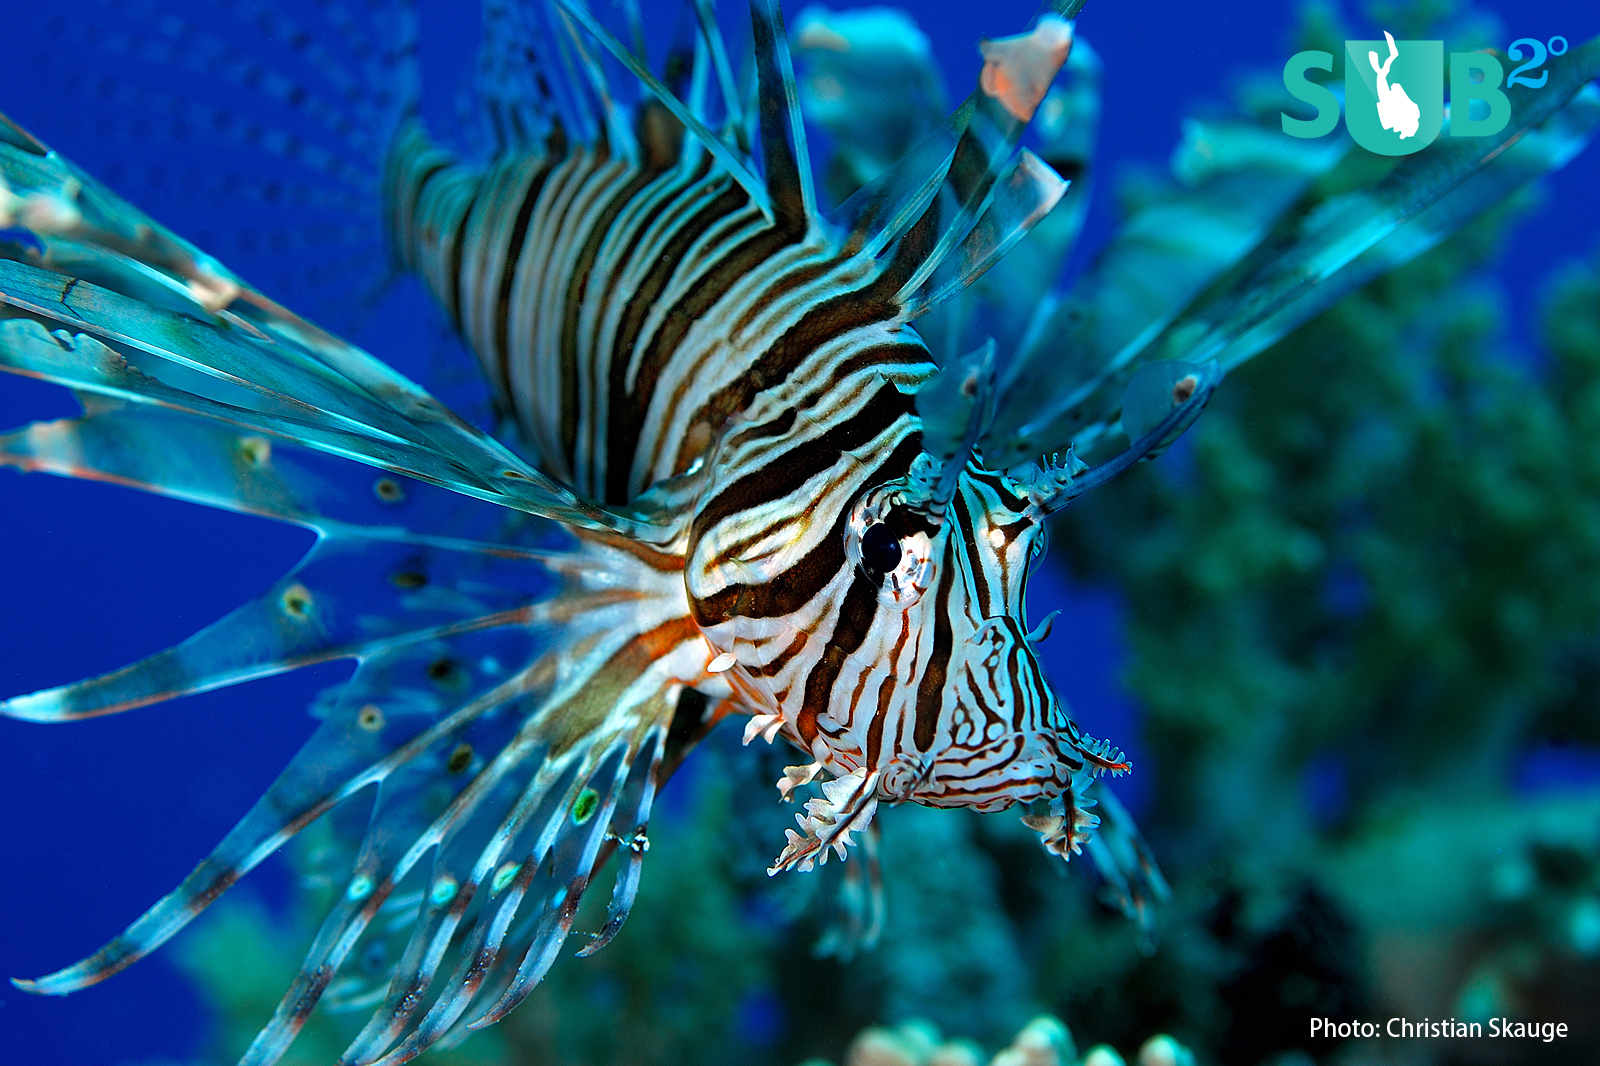 Curious divers should not touch these friendly and brave little fish. Their spiny fan-like projections are poisonous.